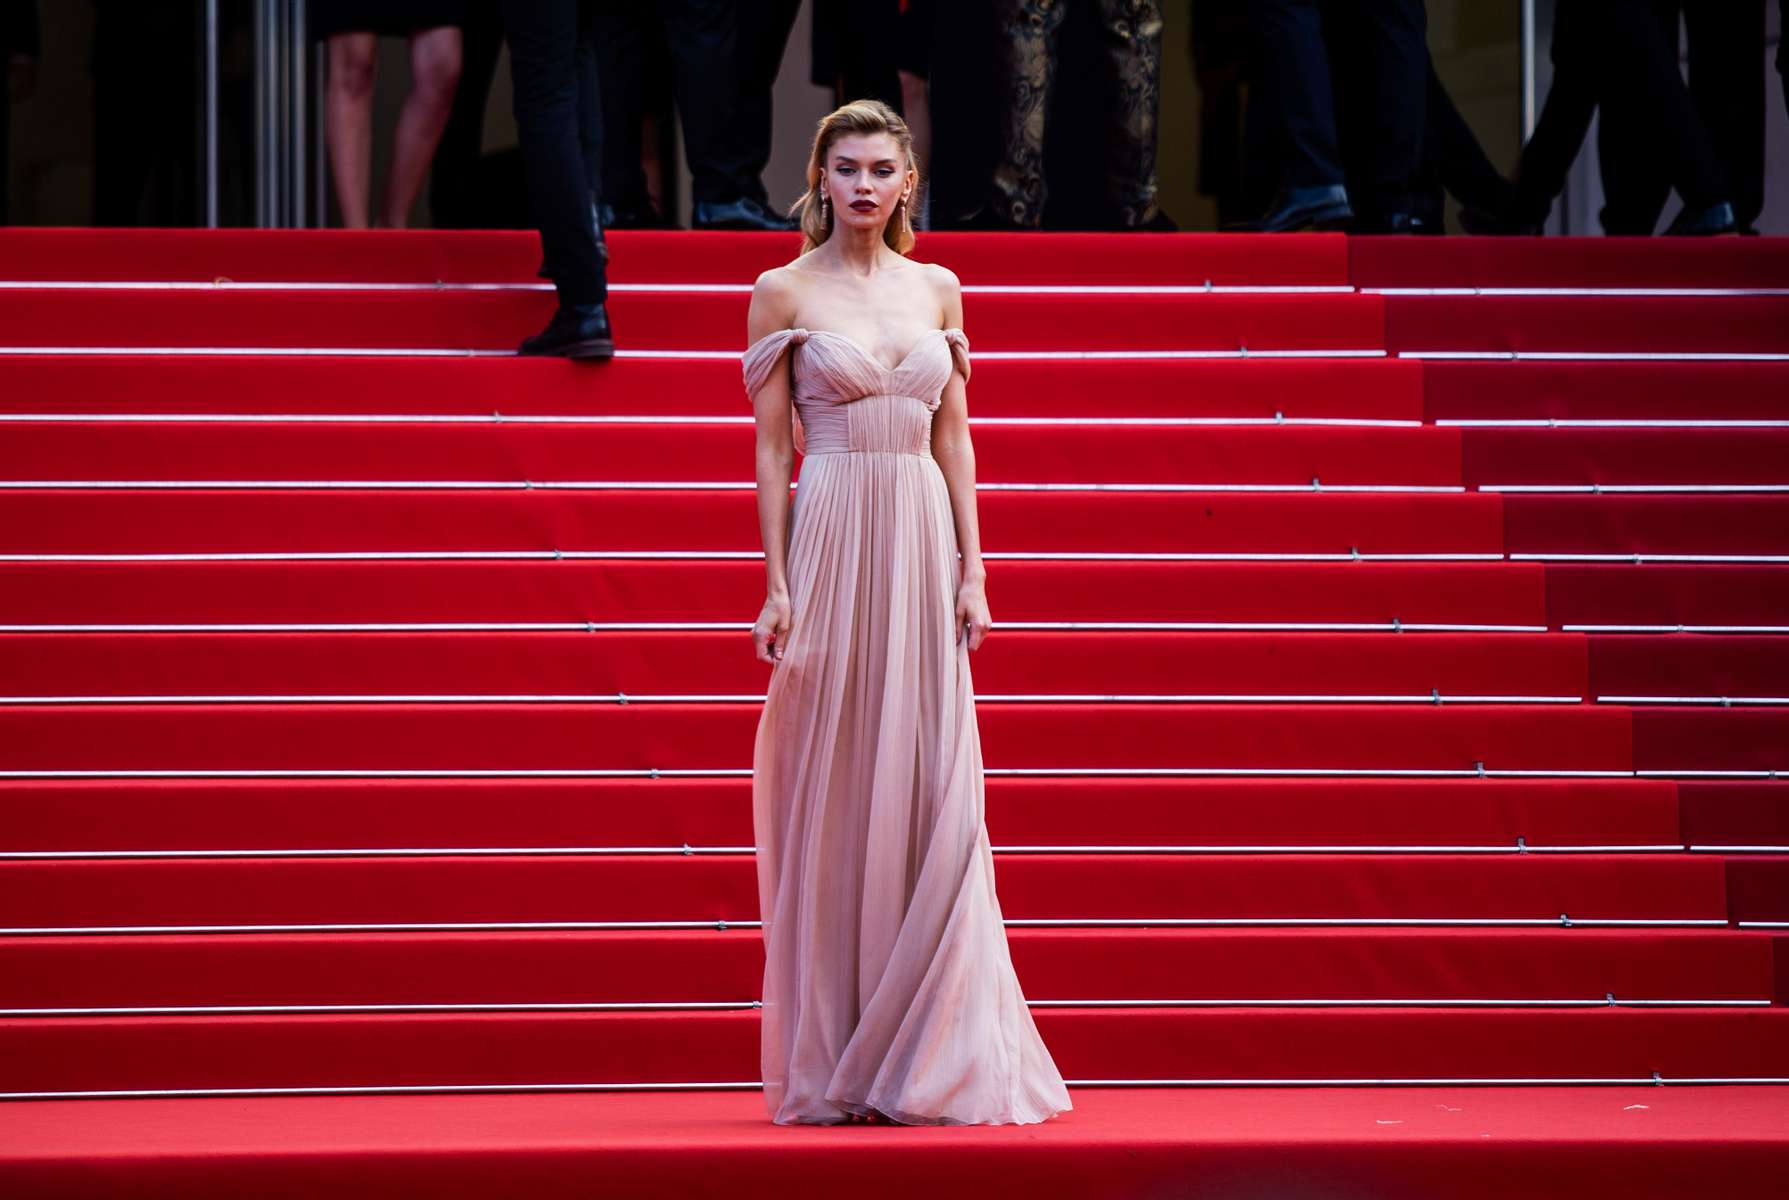 """Stella Maxwell arrives for the screening of the film """"France"""" in competition at the 74th annual Cannes Film Festival in Cannes, France on July 15, 2021."""